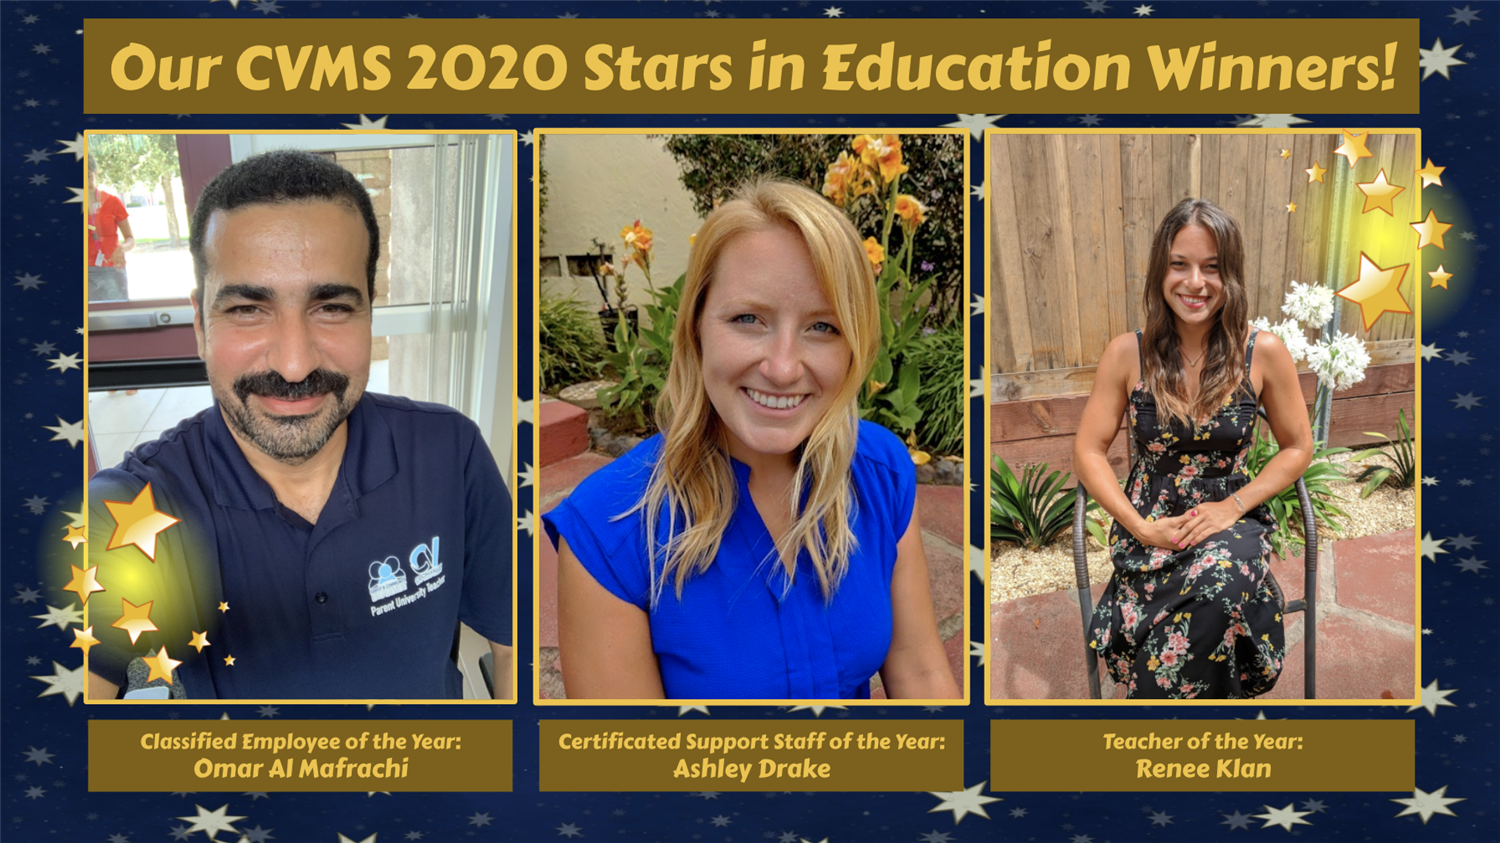 Our CVMS #StarsinEducation for 2020... #CVMScougarPRIDE 🐾